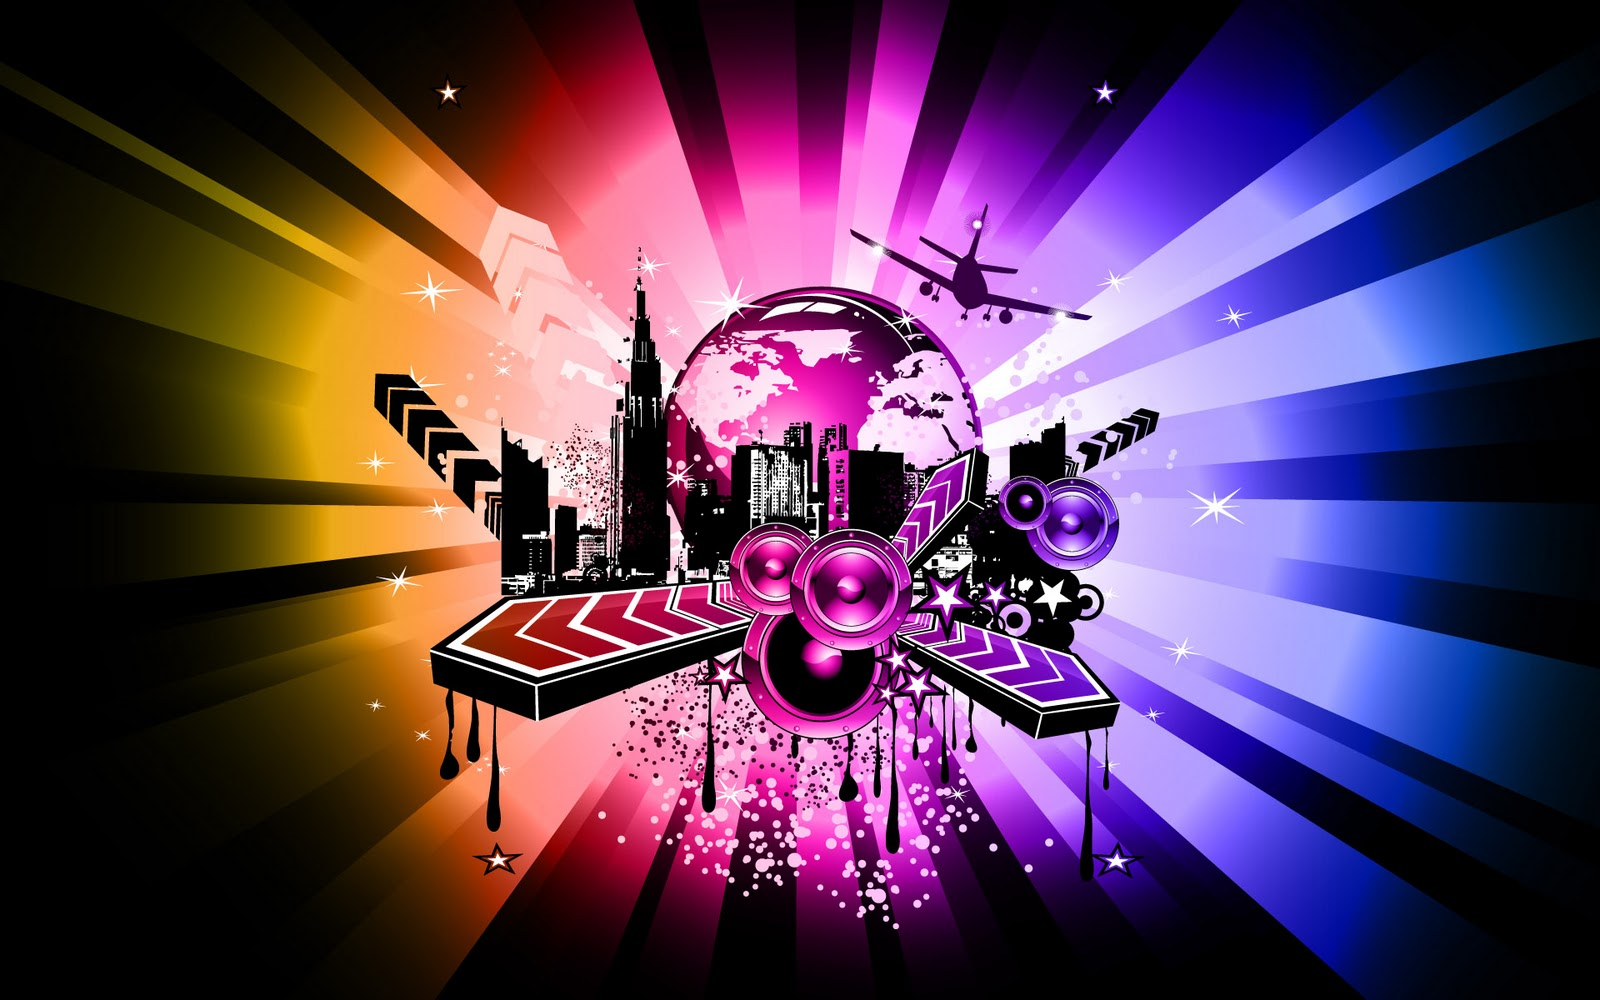 Teen tainment colorful victor art music wallpapers - Wallpaper artist music ...